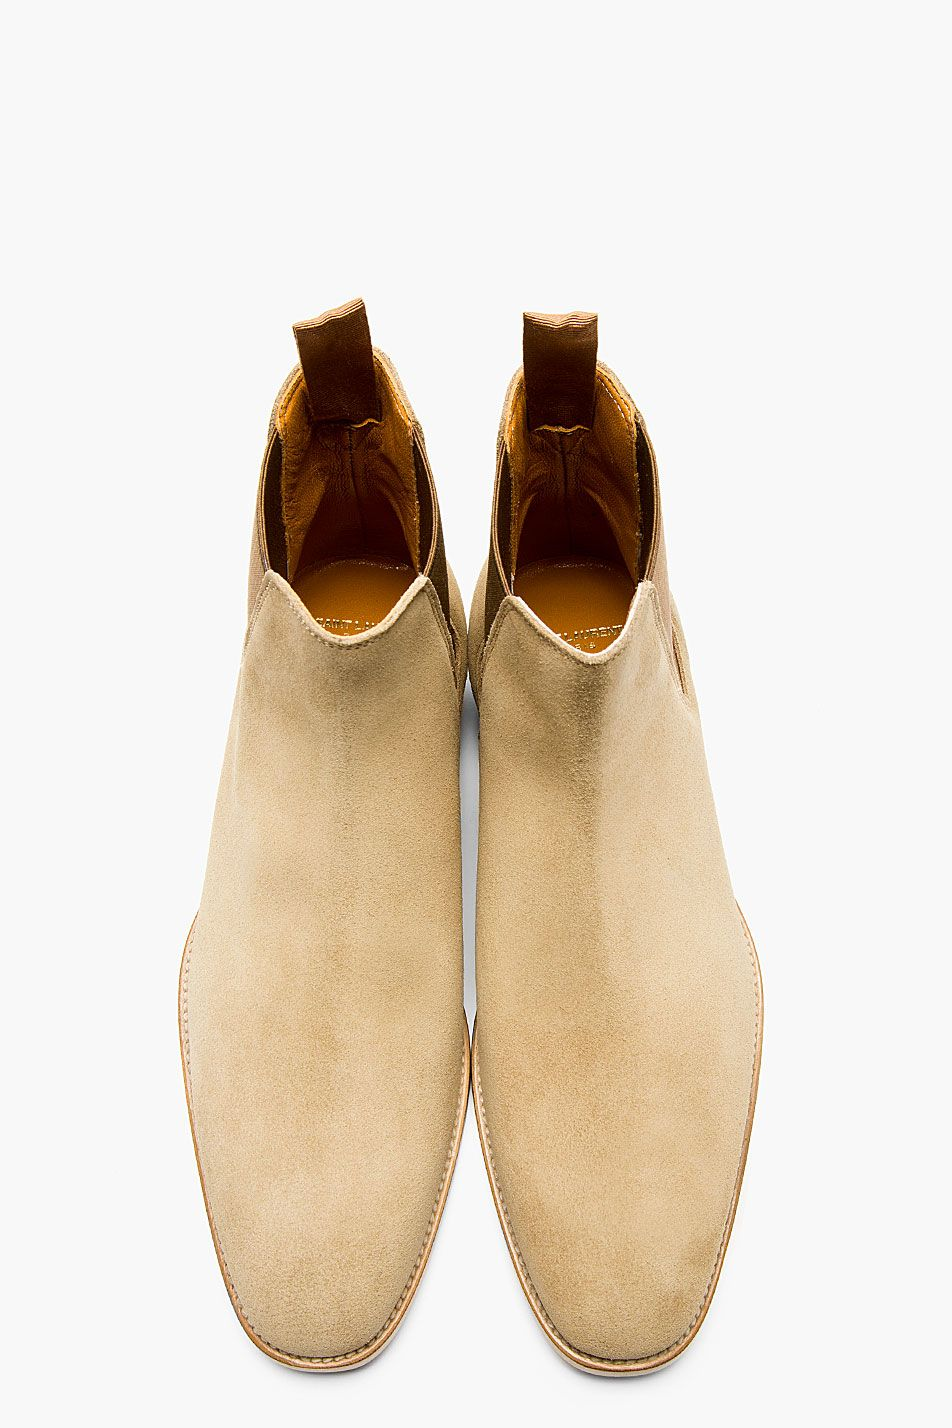 Harry Styles Shoes For Sale